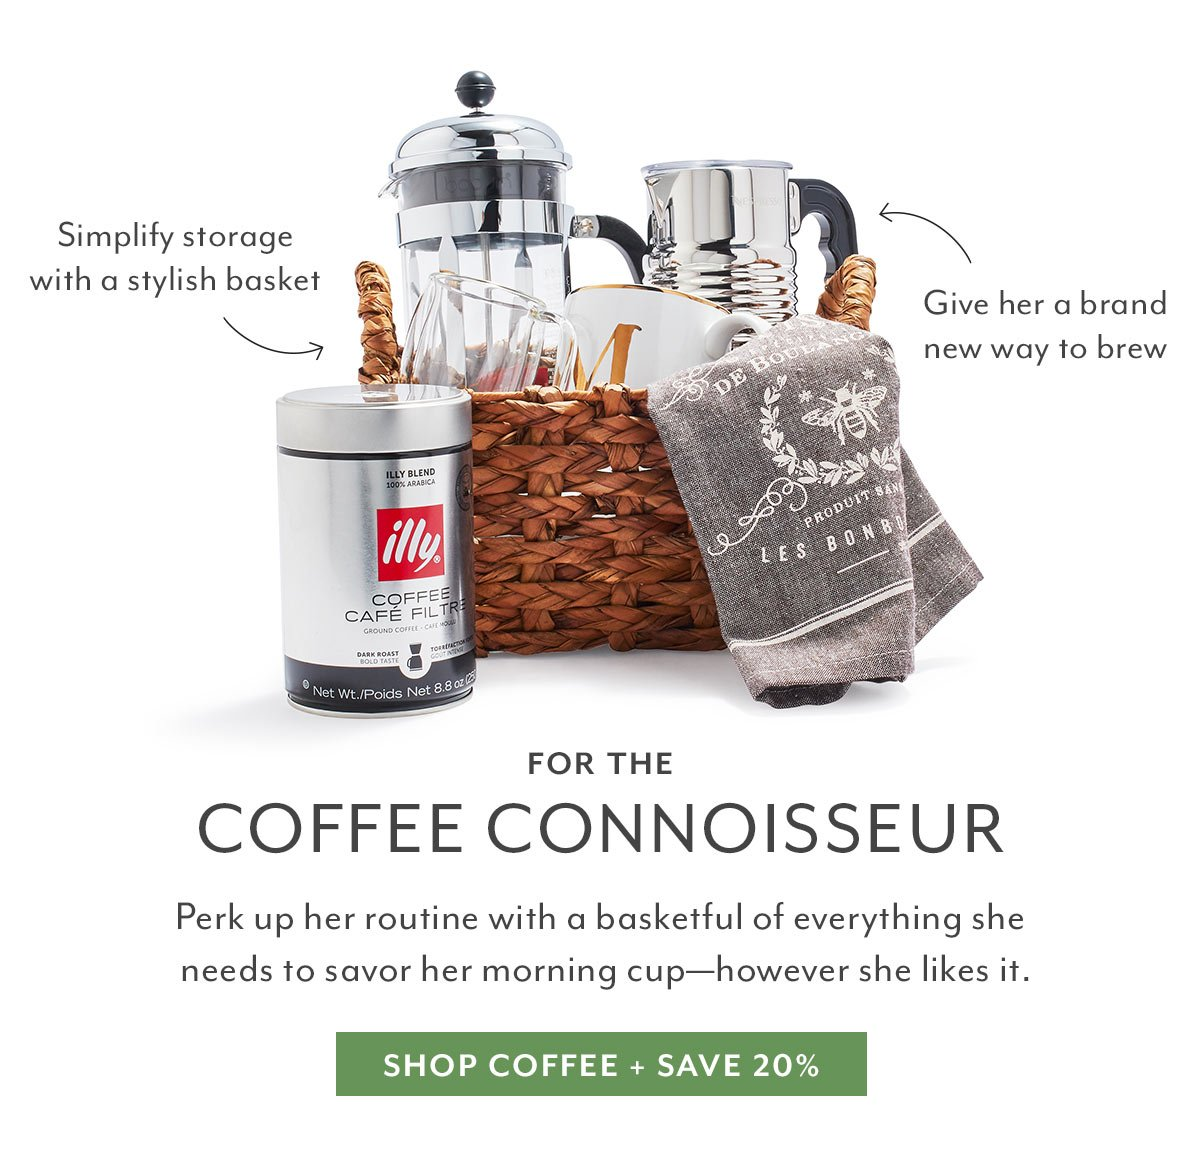 For the Coffee Connoisseur